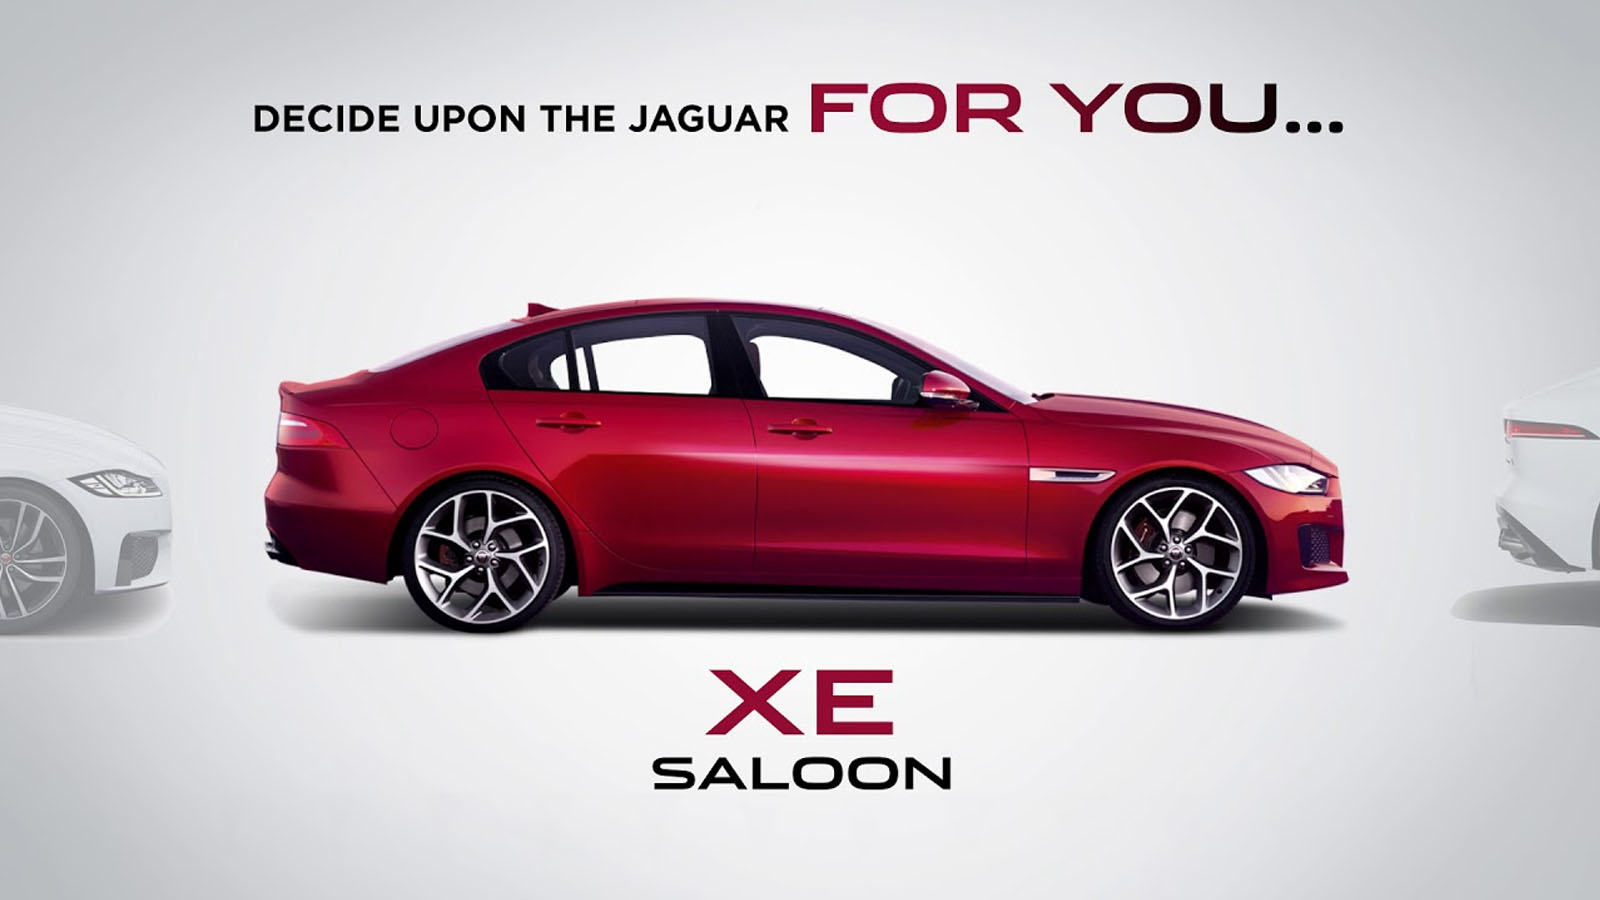 Side-view of a red Jaguar XE.